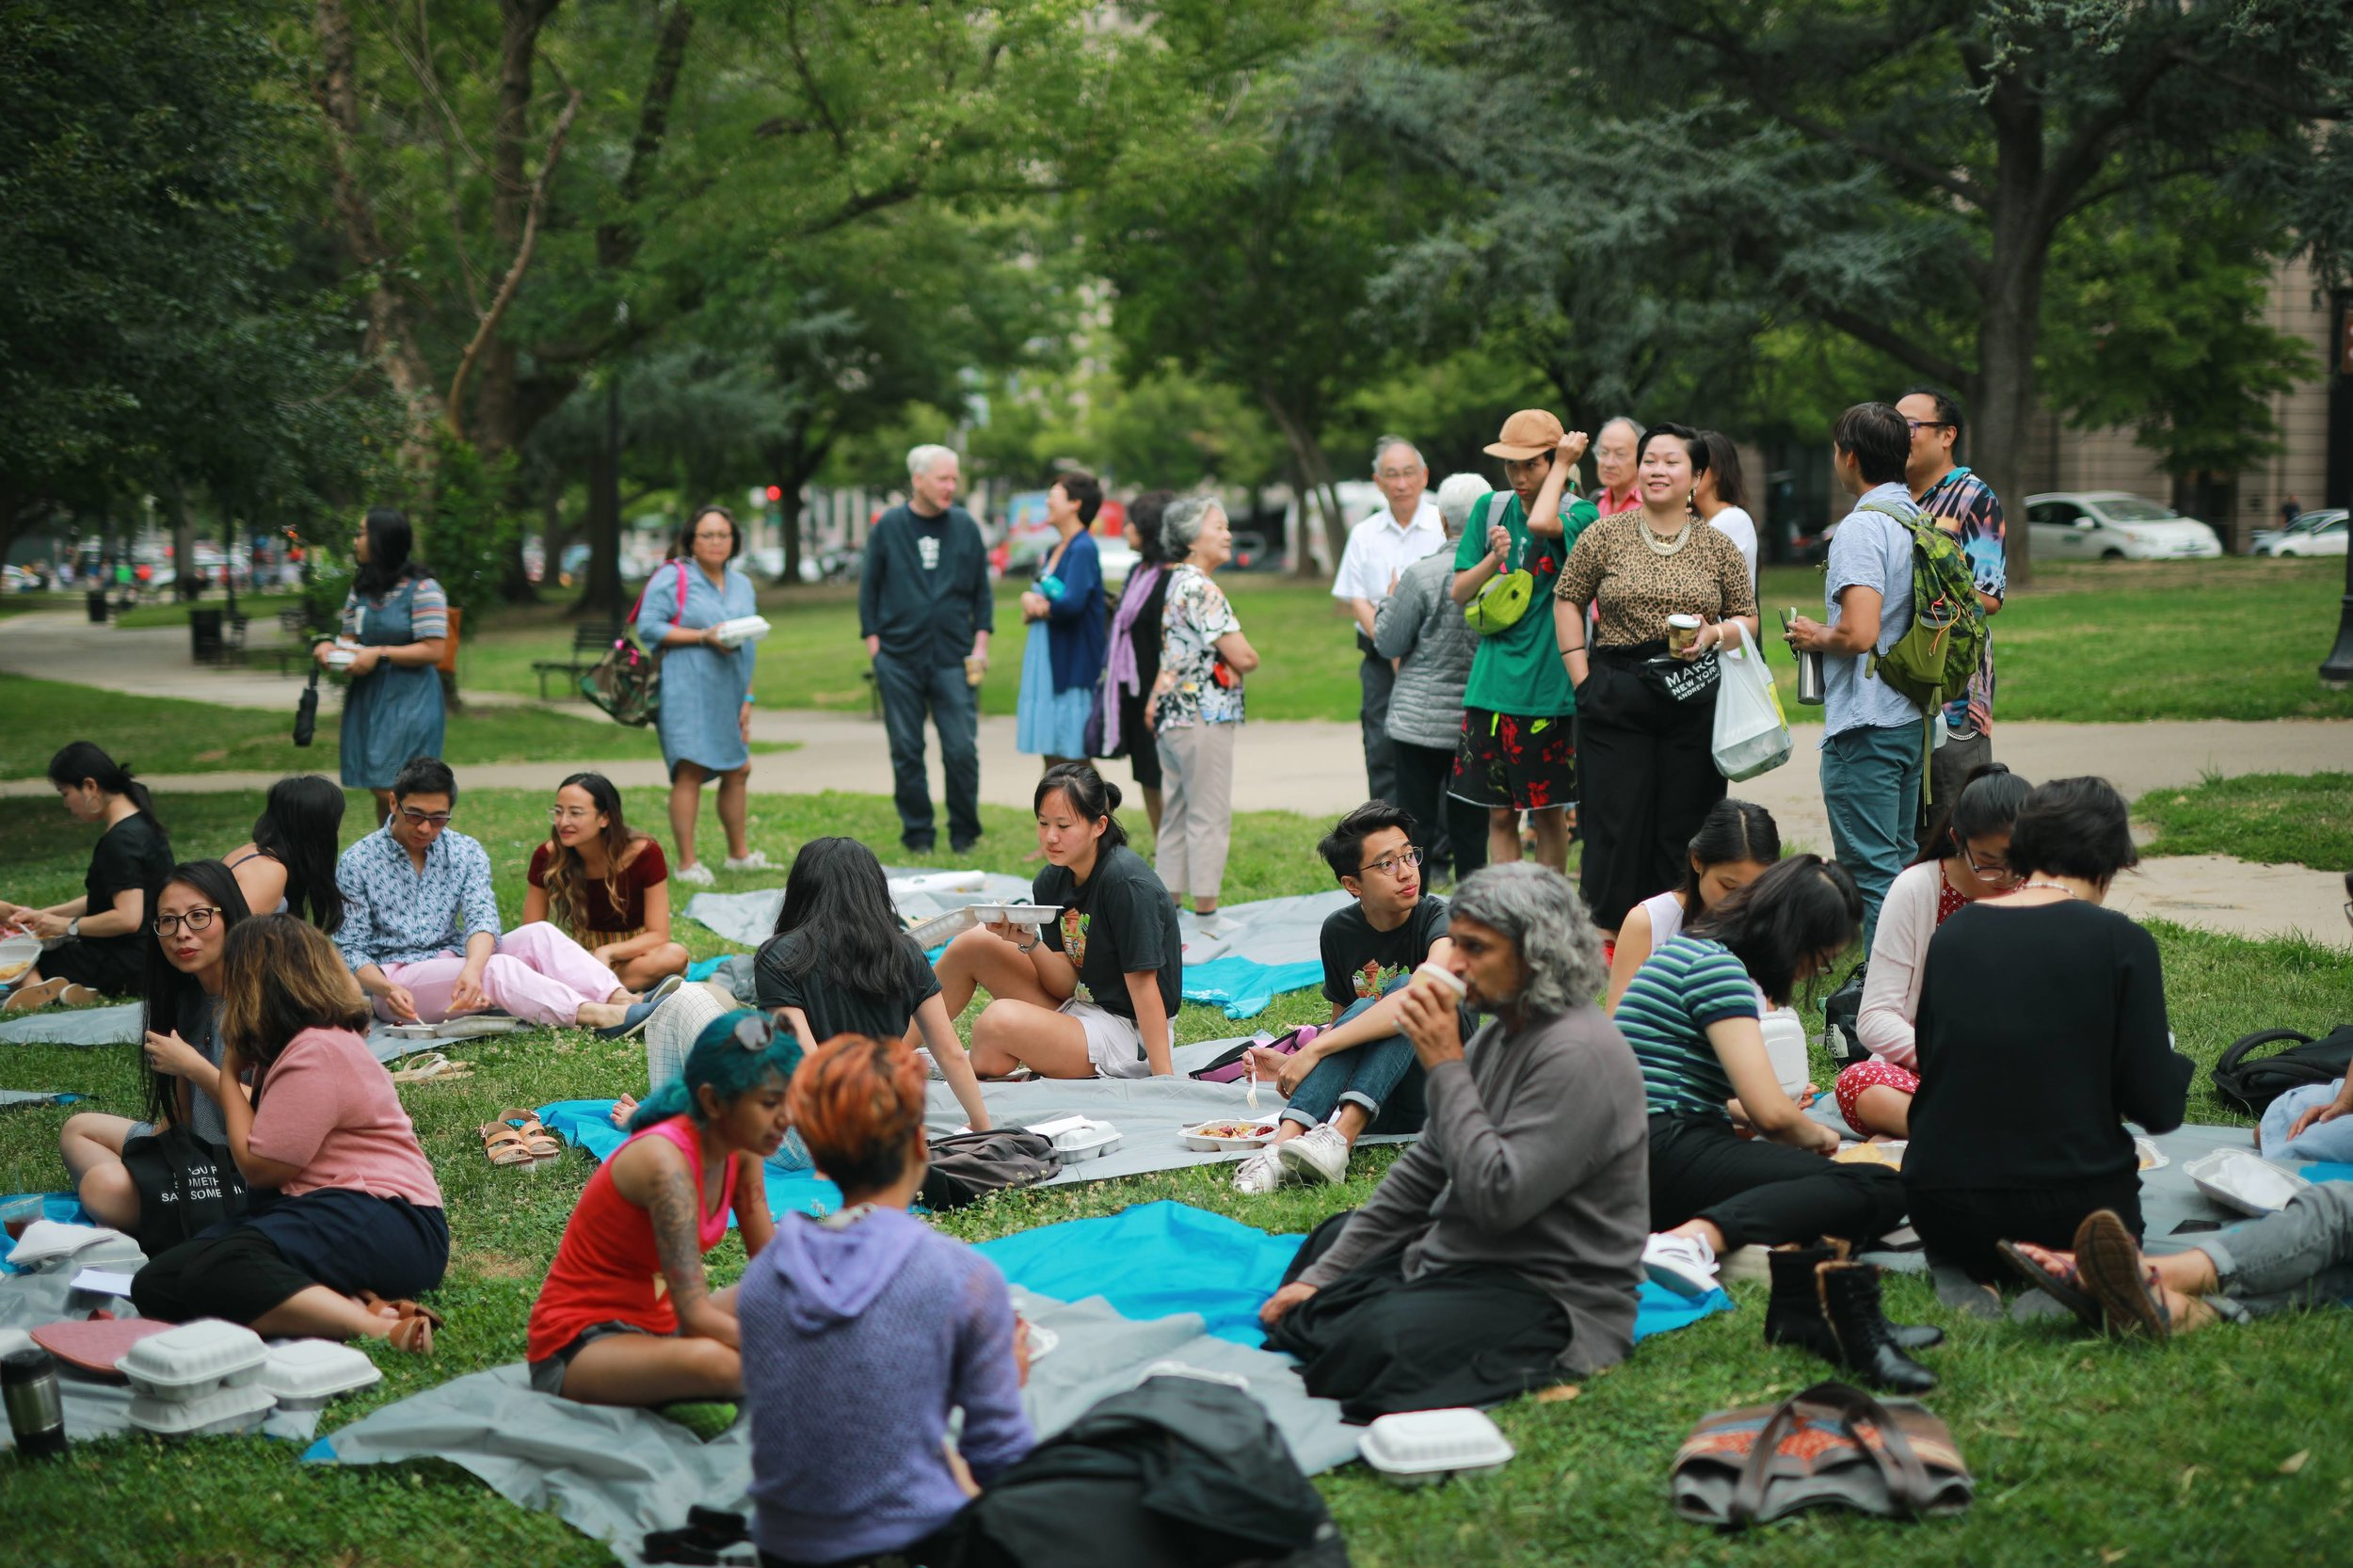 Festival attendees share a meal at the Poet's Peace Breakfast in Franklin Square Park! Photo Credit: Hannah Colen.